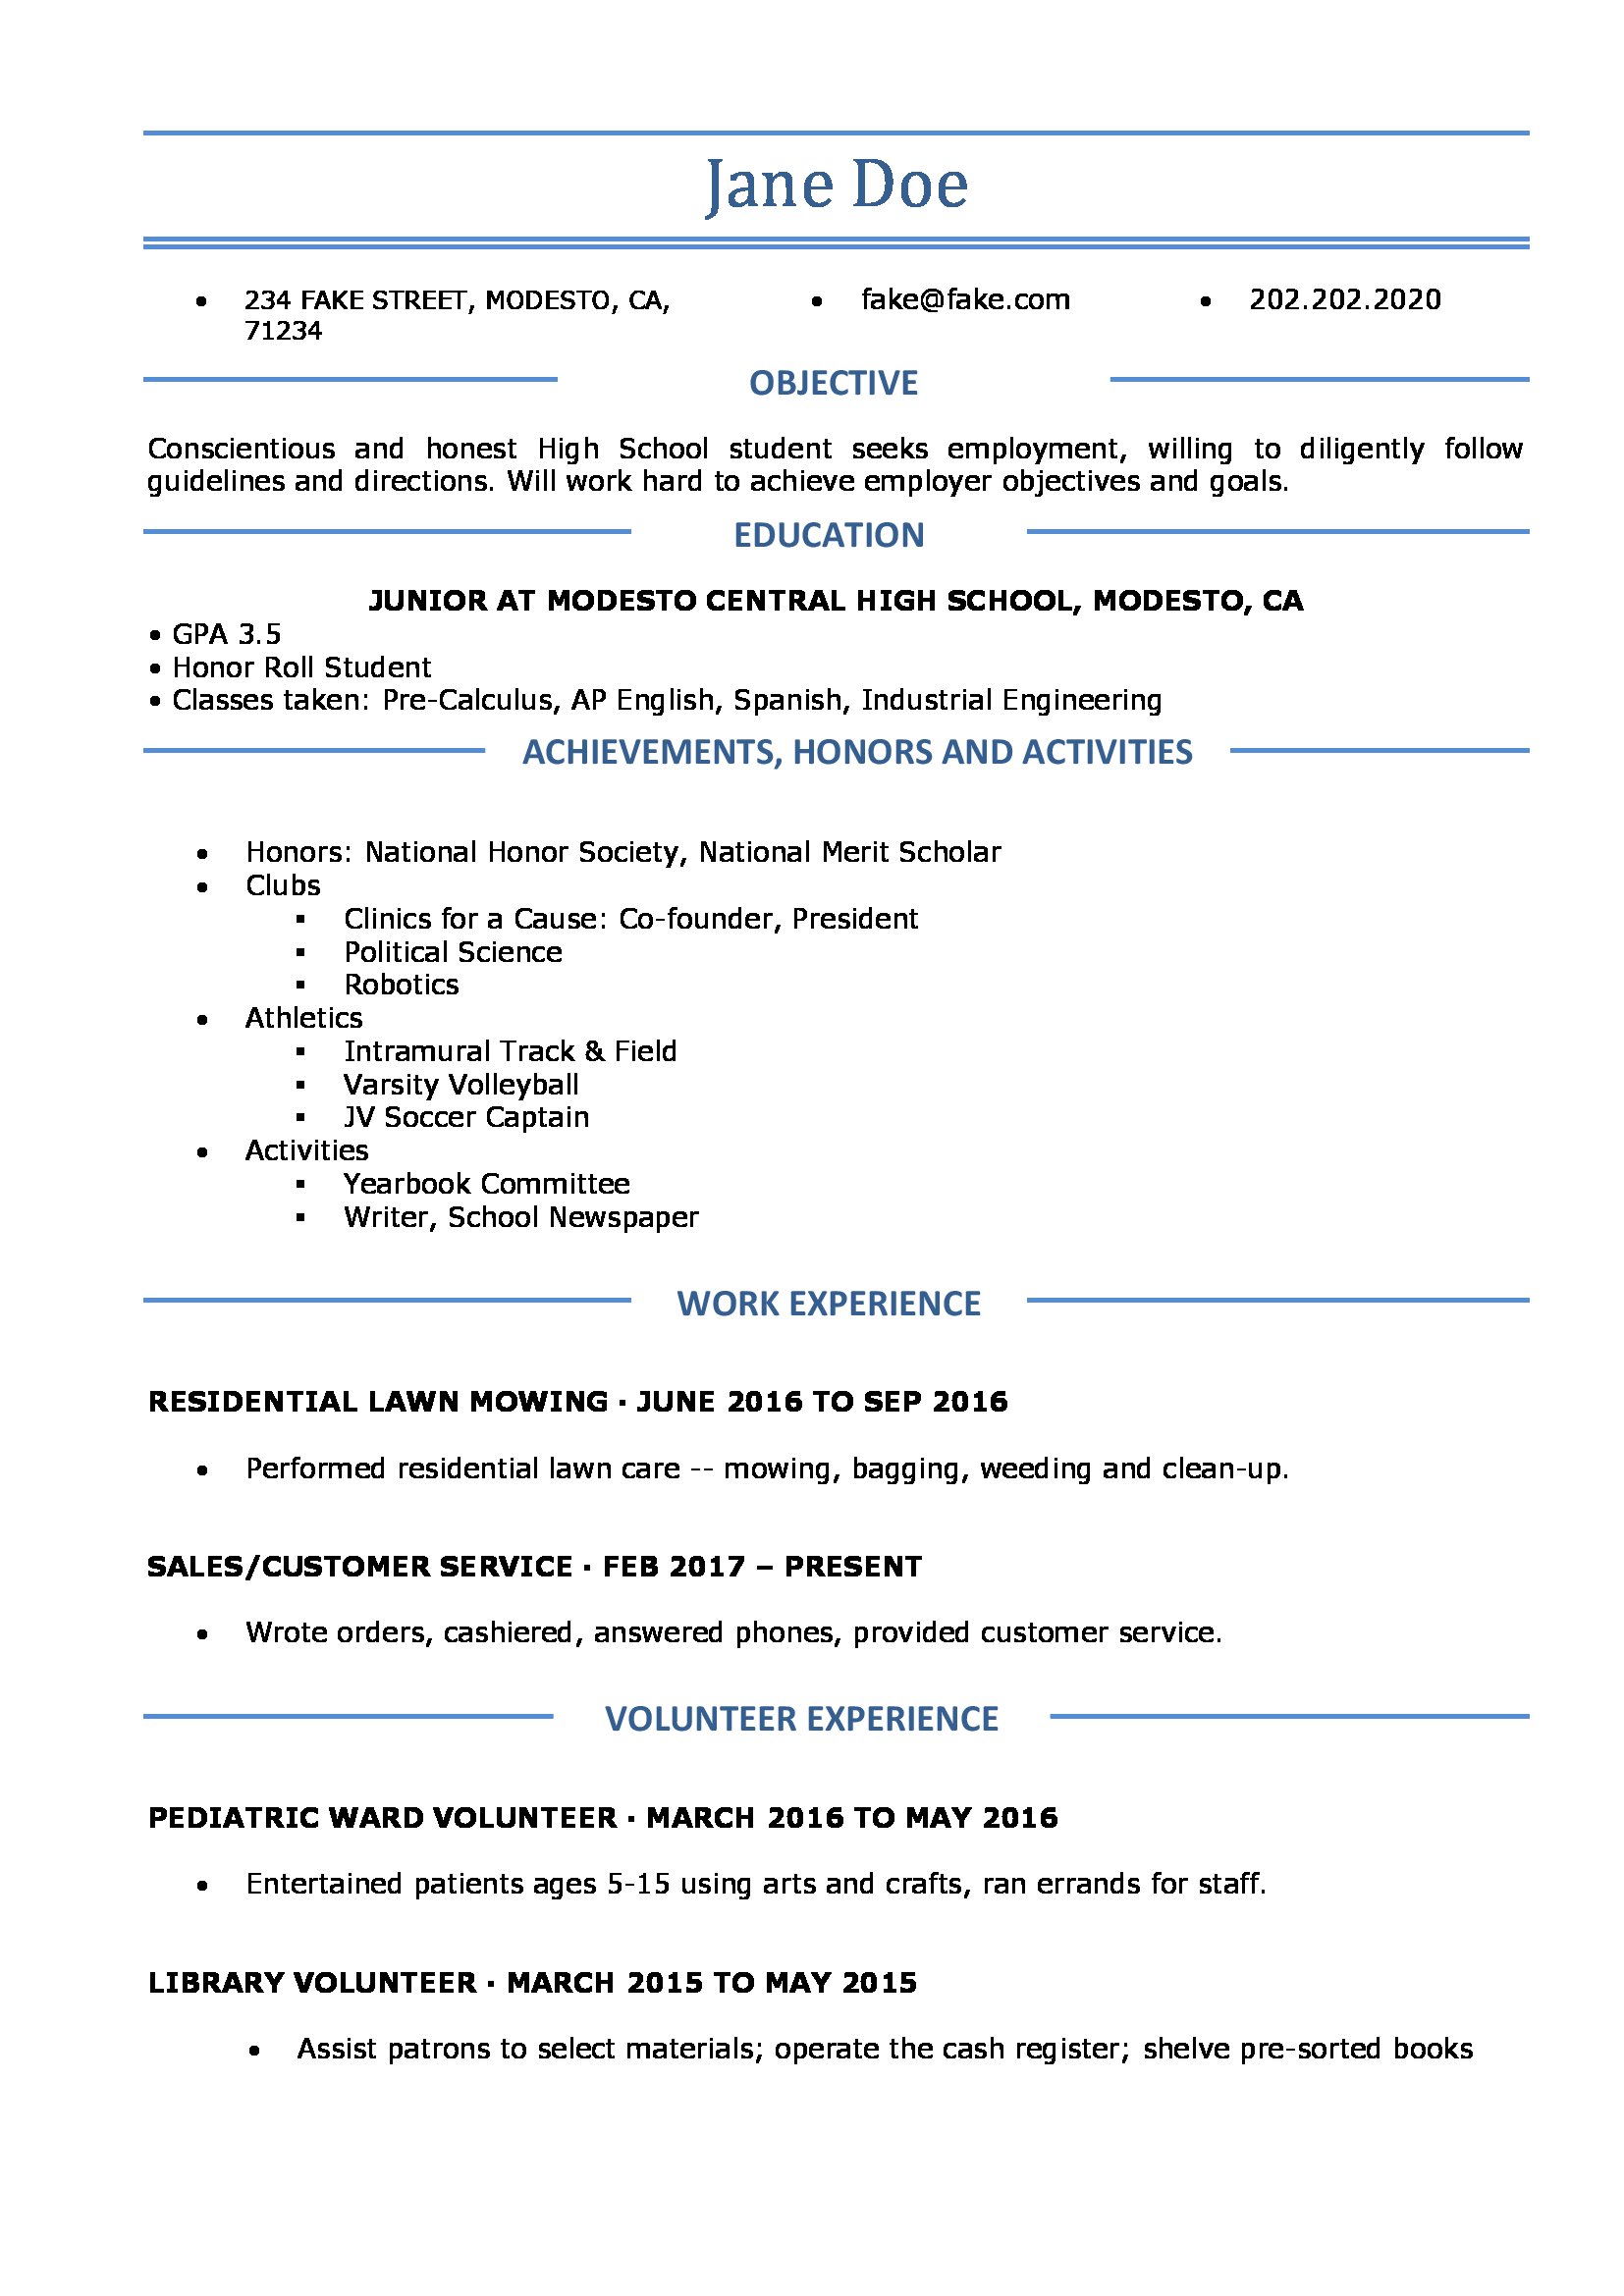 Resume Builder For High School Students